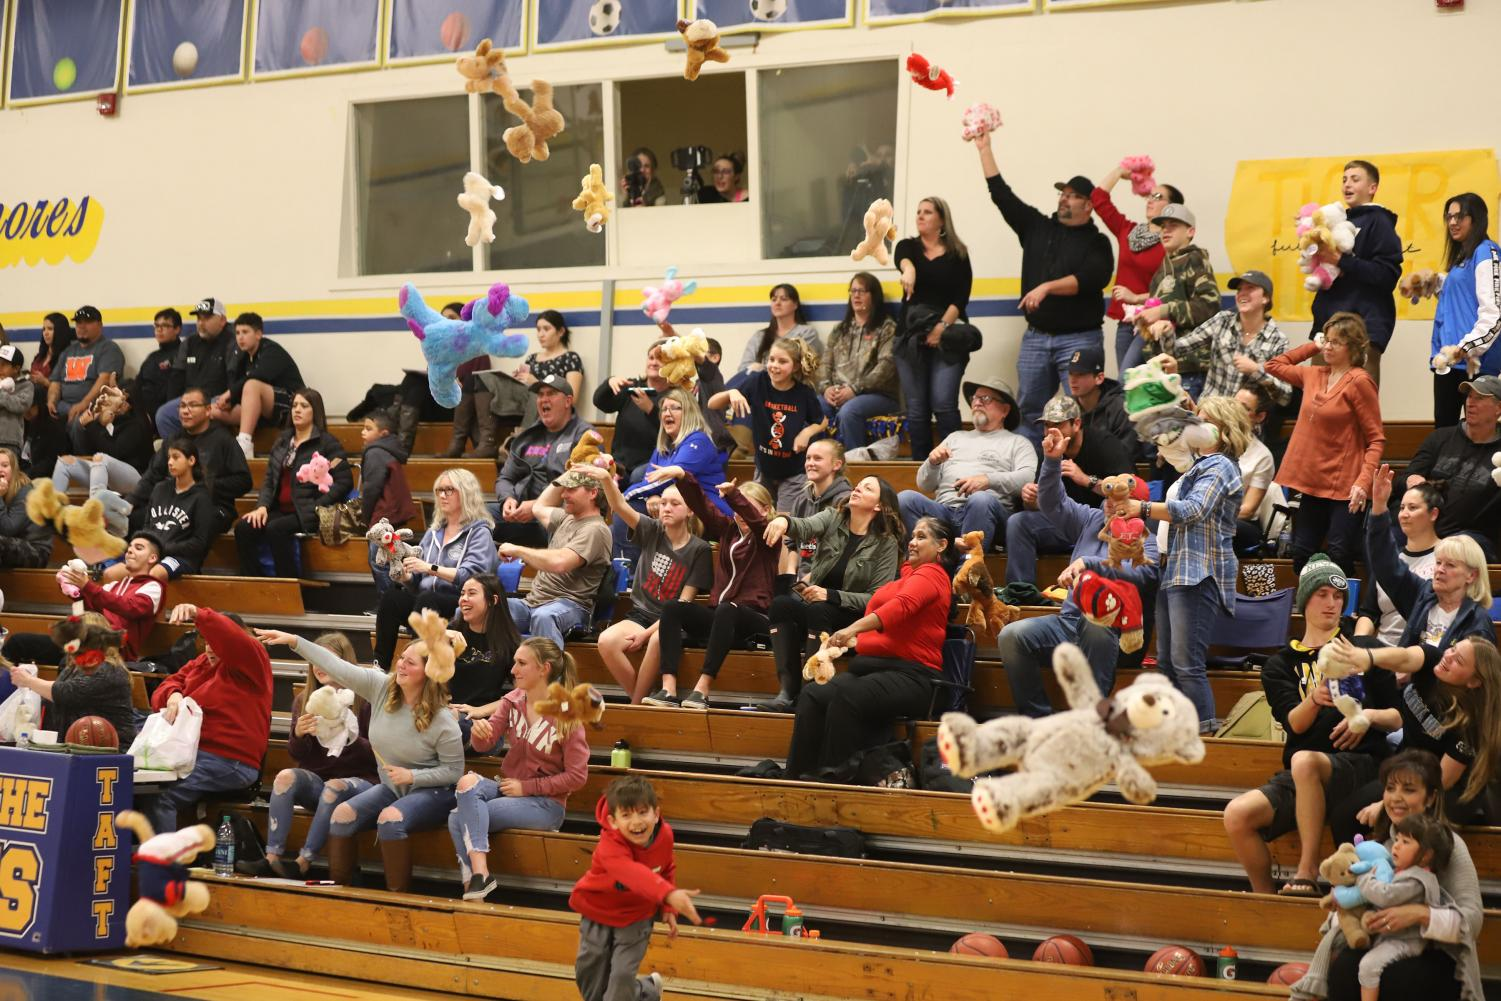 For one of the A.V.I.D Senior projects, a Teddy Bear toss was put in action.